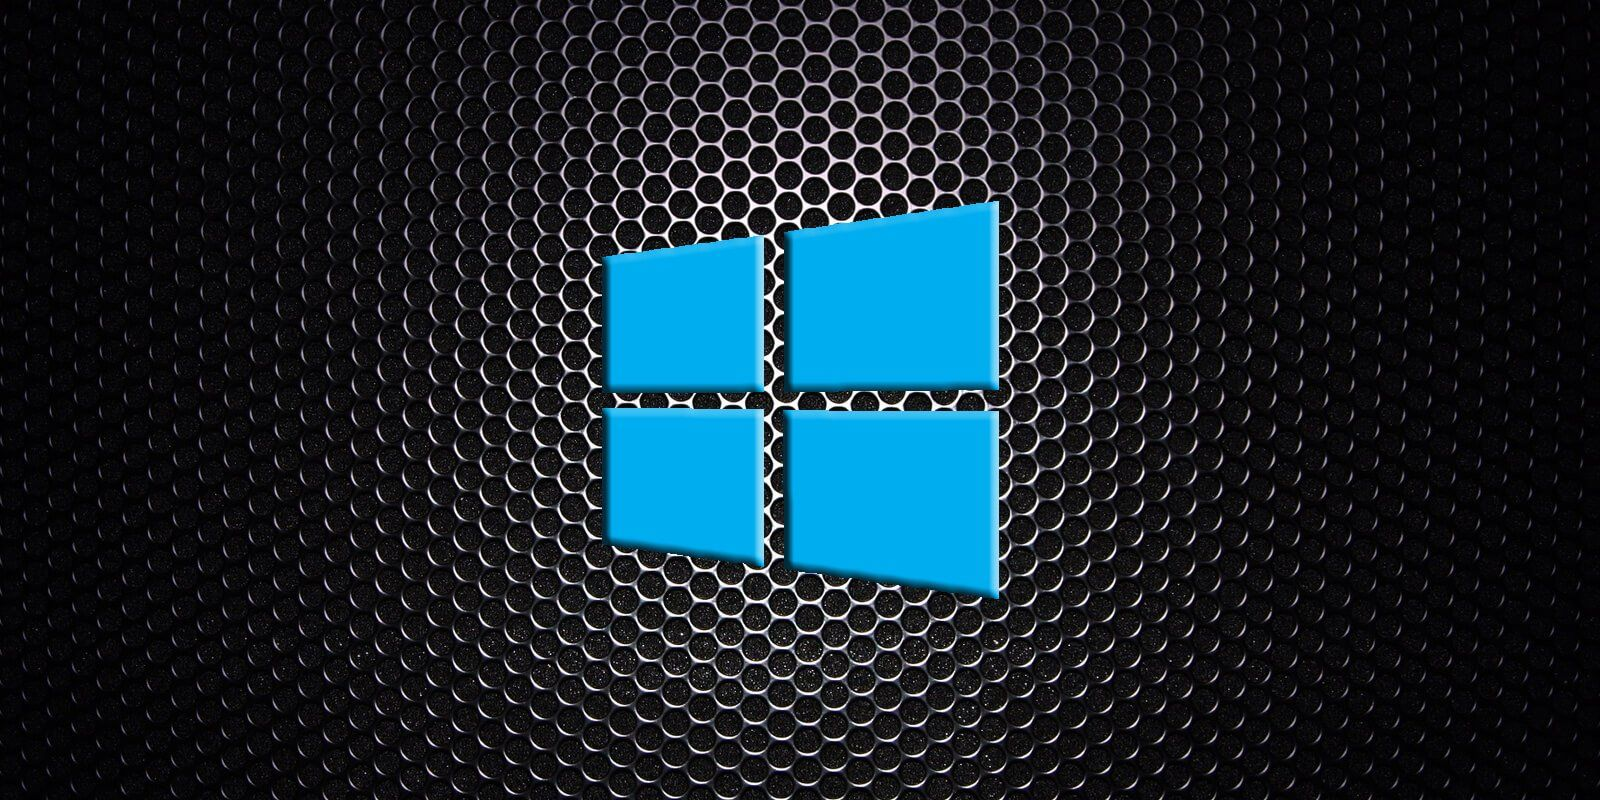 Windows 10 To Give Power Users More Control Over Their Gpus Microsoft Malware Removal Microsoft Windows